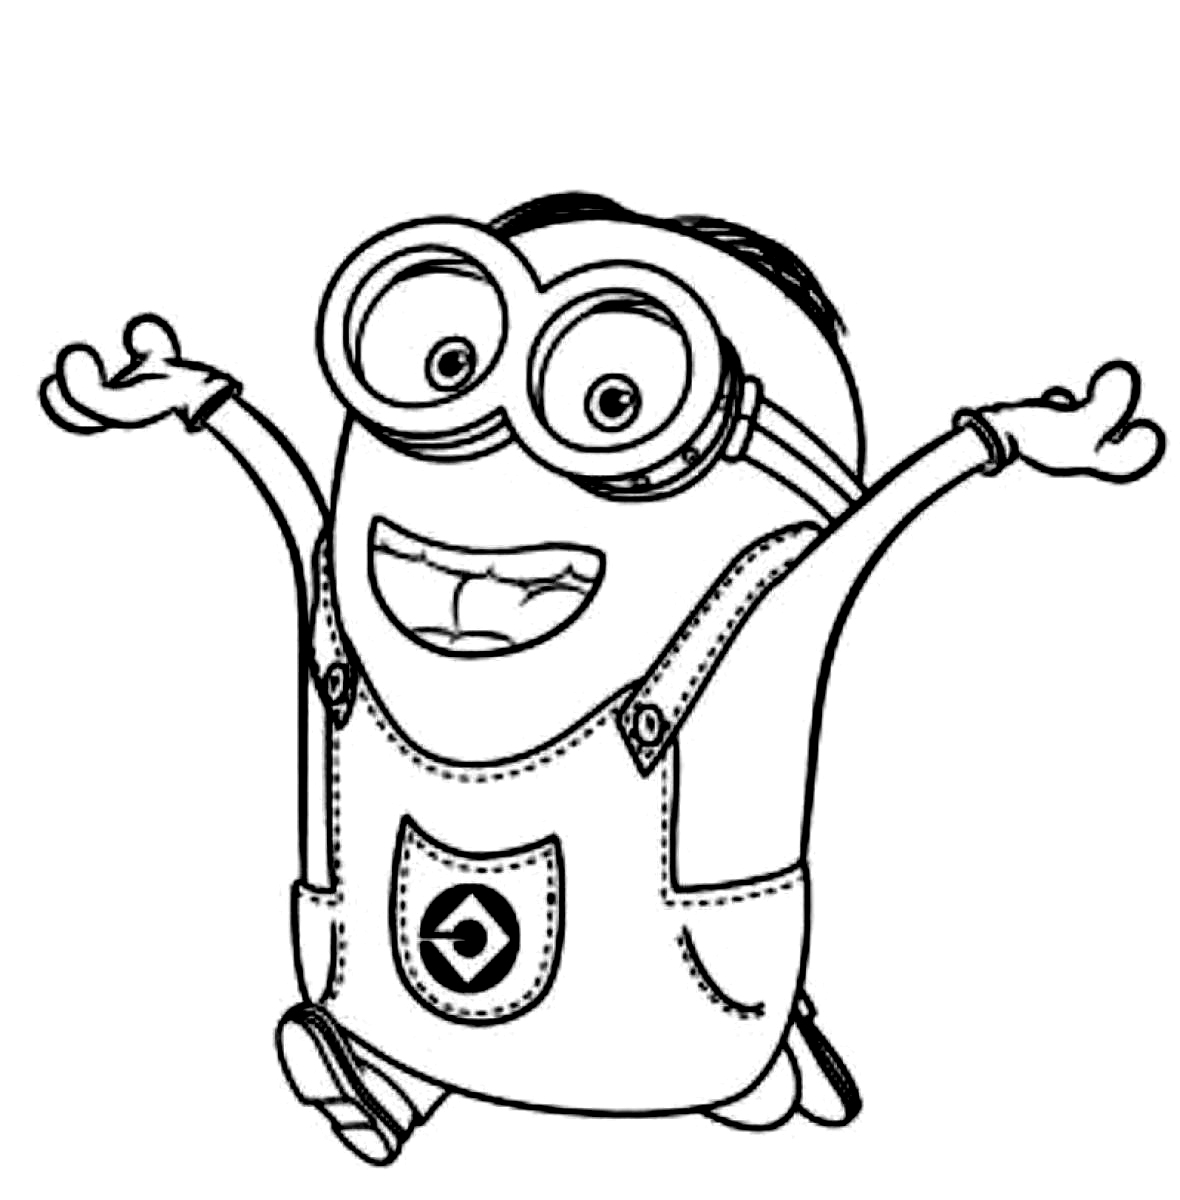 Superieur Despicable Me Coloring Pages Printable